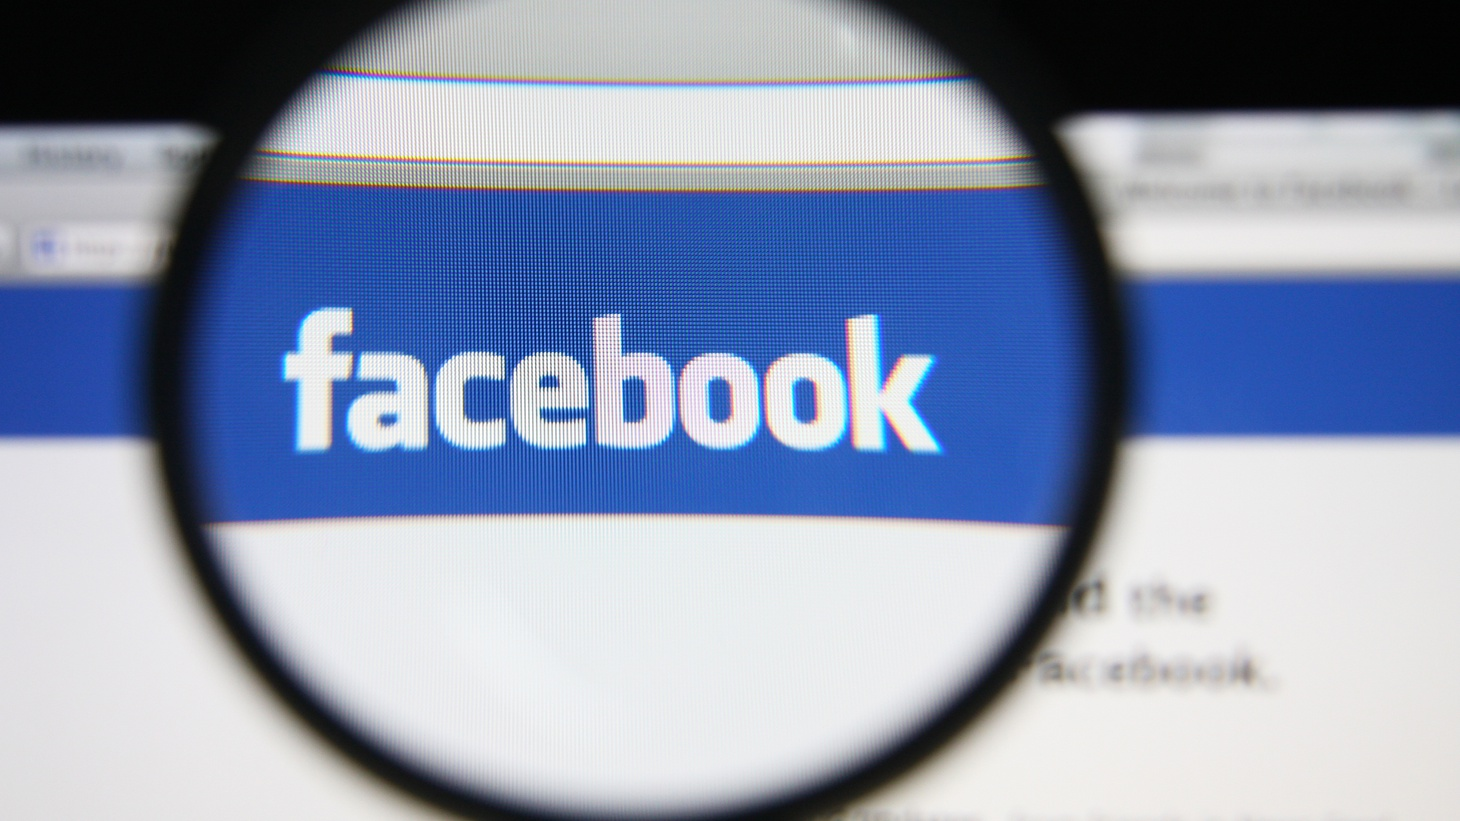 """""""Facebook, based in Menlo Park, has created its own 'independent oversight' board of global experts, though it's unelected, and chosen by Facebook. The European Union touts its tougher regulation of privacy and the internet, but those regulators are also unelected, and impose their rules on people far from Europe,"""" writes Joe Mathews."""